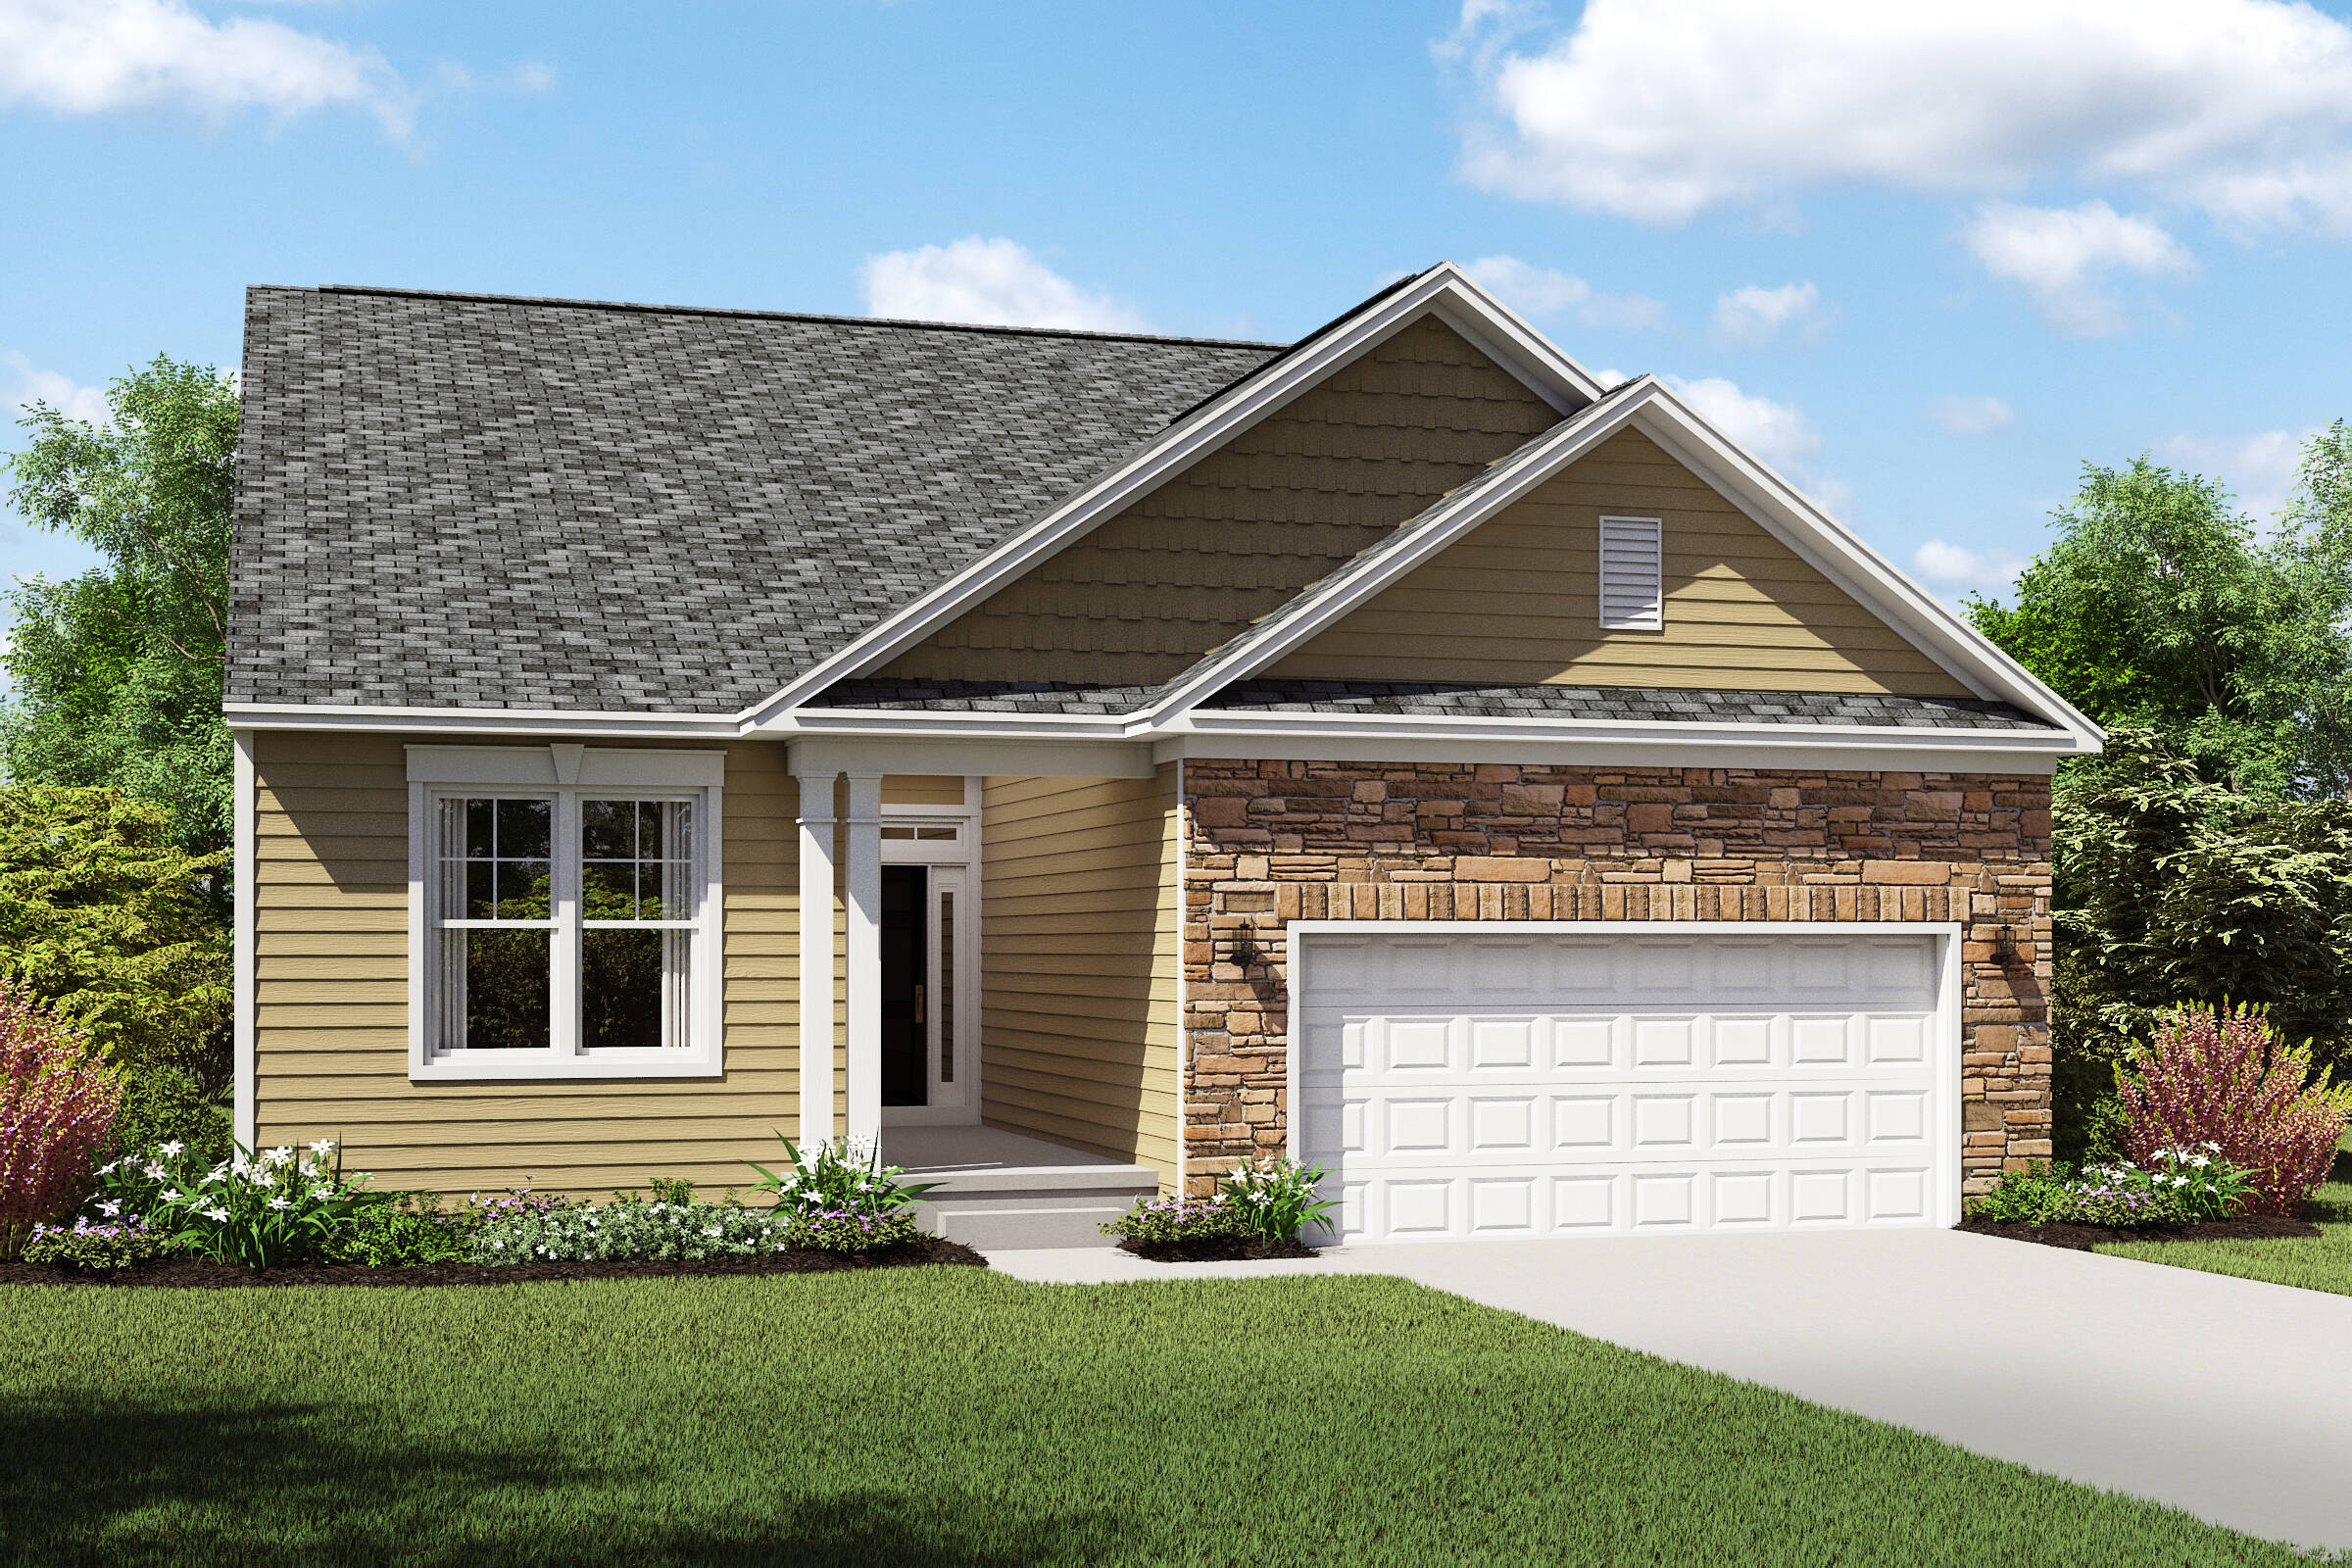 killarney dt homes for sale greater cleveland